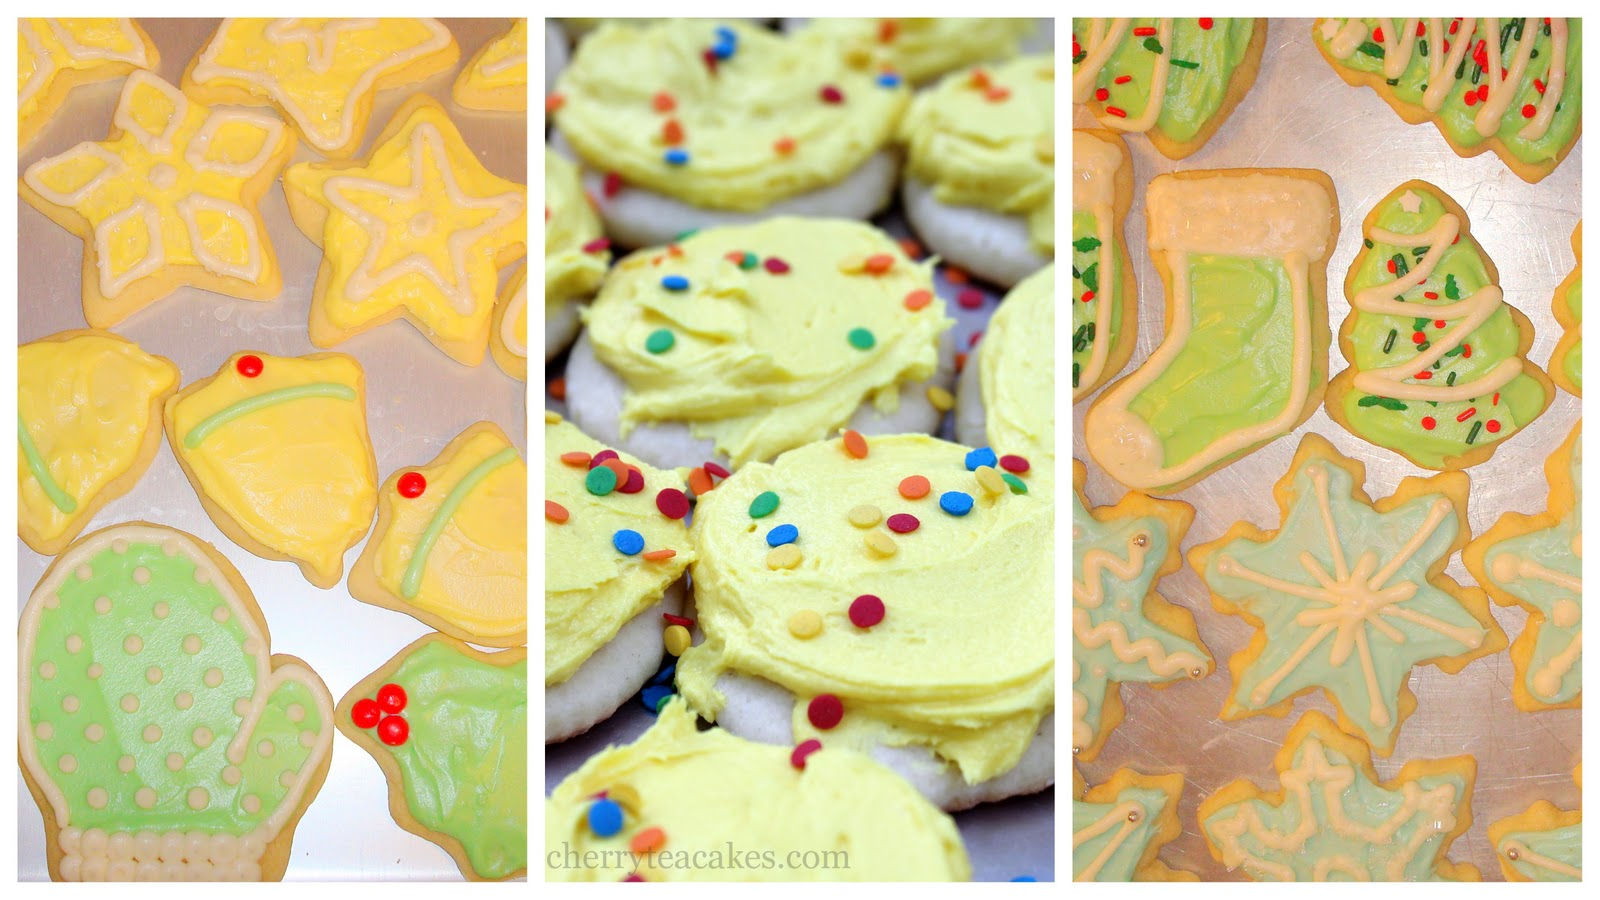 Cherry Tea Cakes Old Fashioned Sugar Cookies